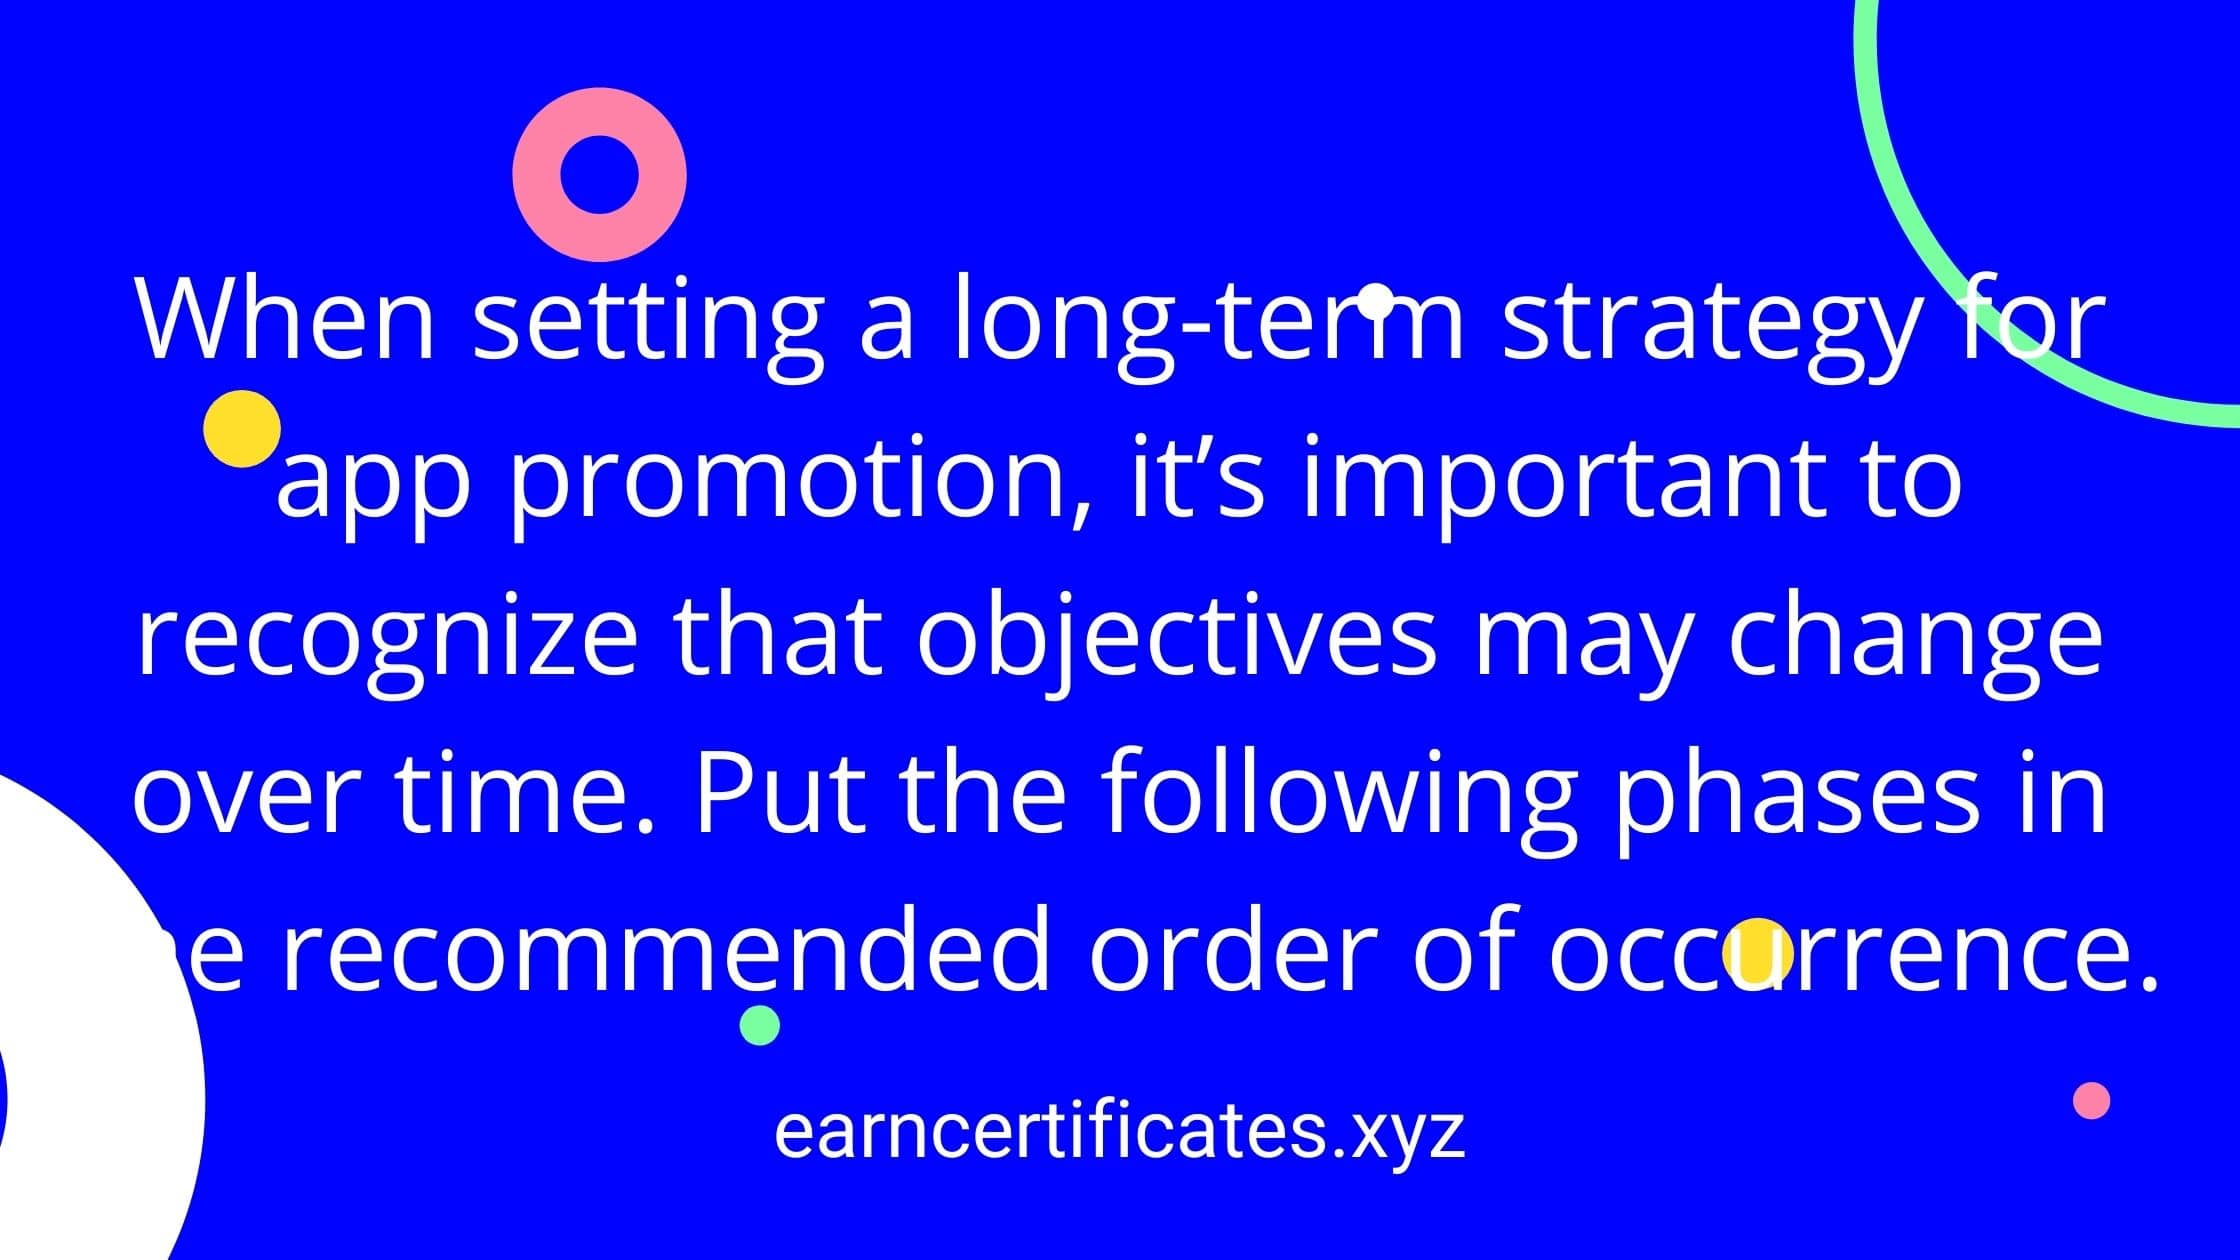 When setting a long-term strategy for app promotion, it's important to recognize that objectives may change over time. Put the following phases in the recommended order of occurrence.